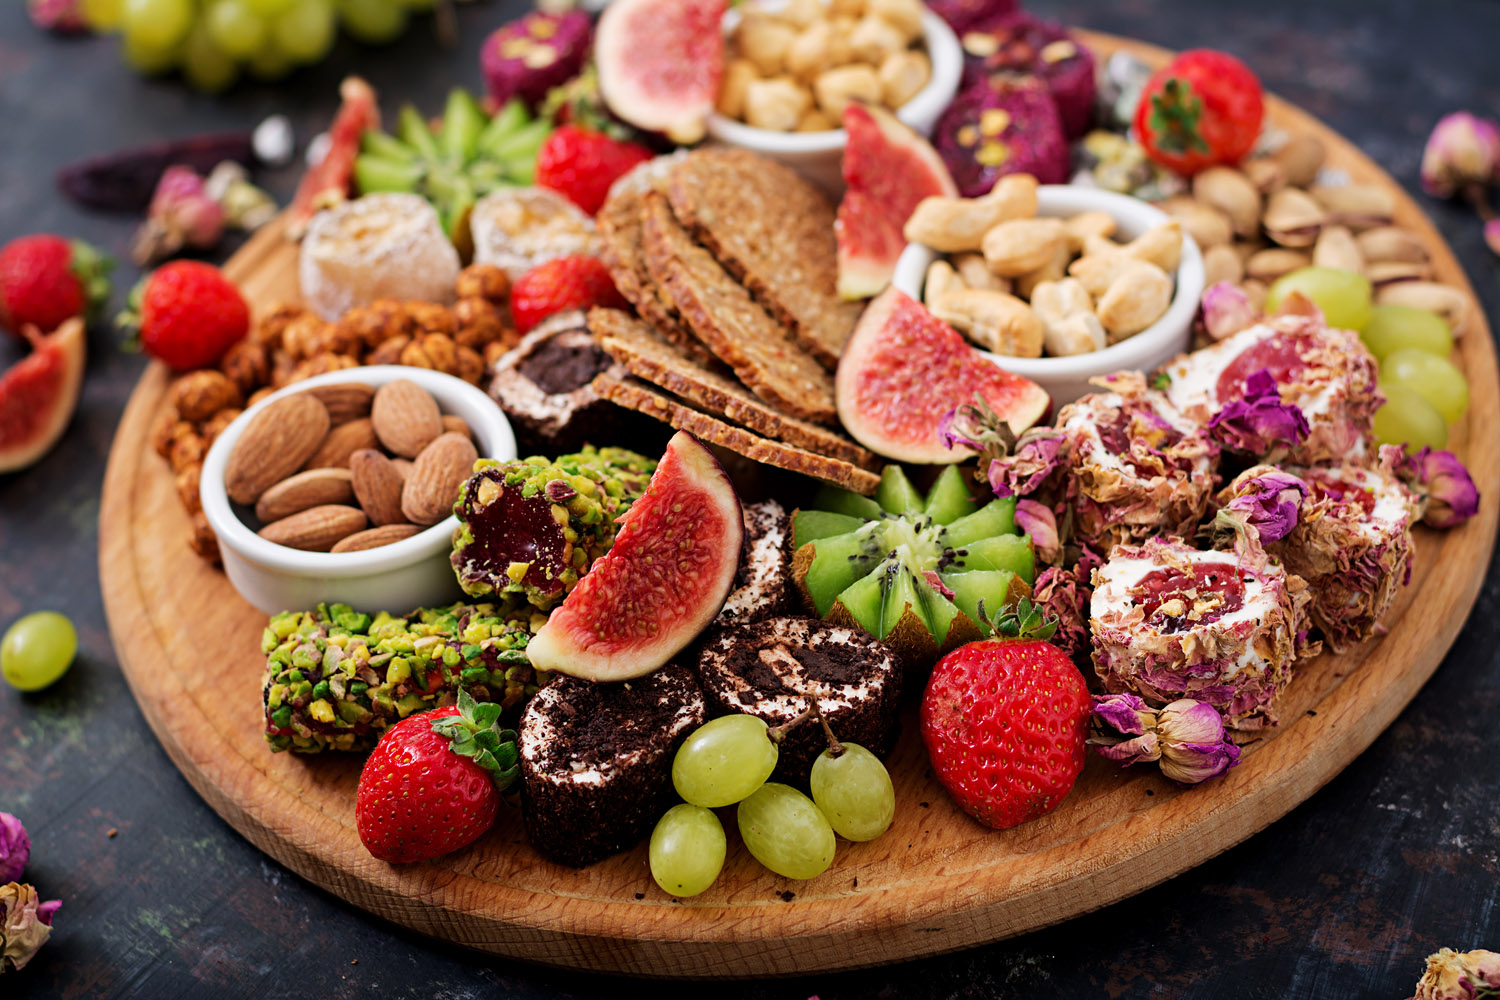 Food to Consume To Lower Cholesterol